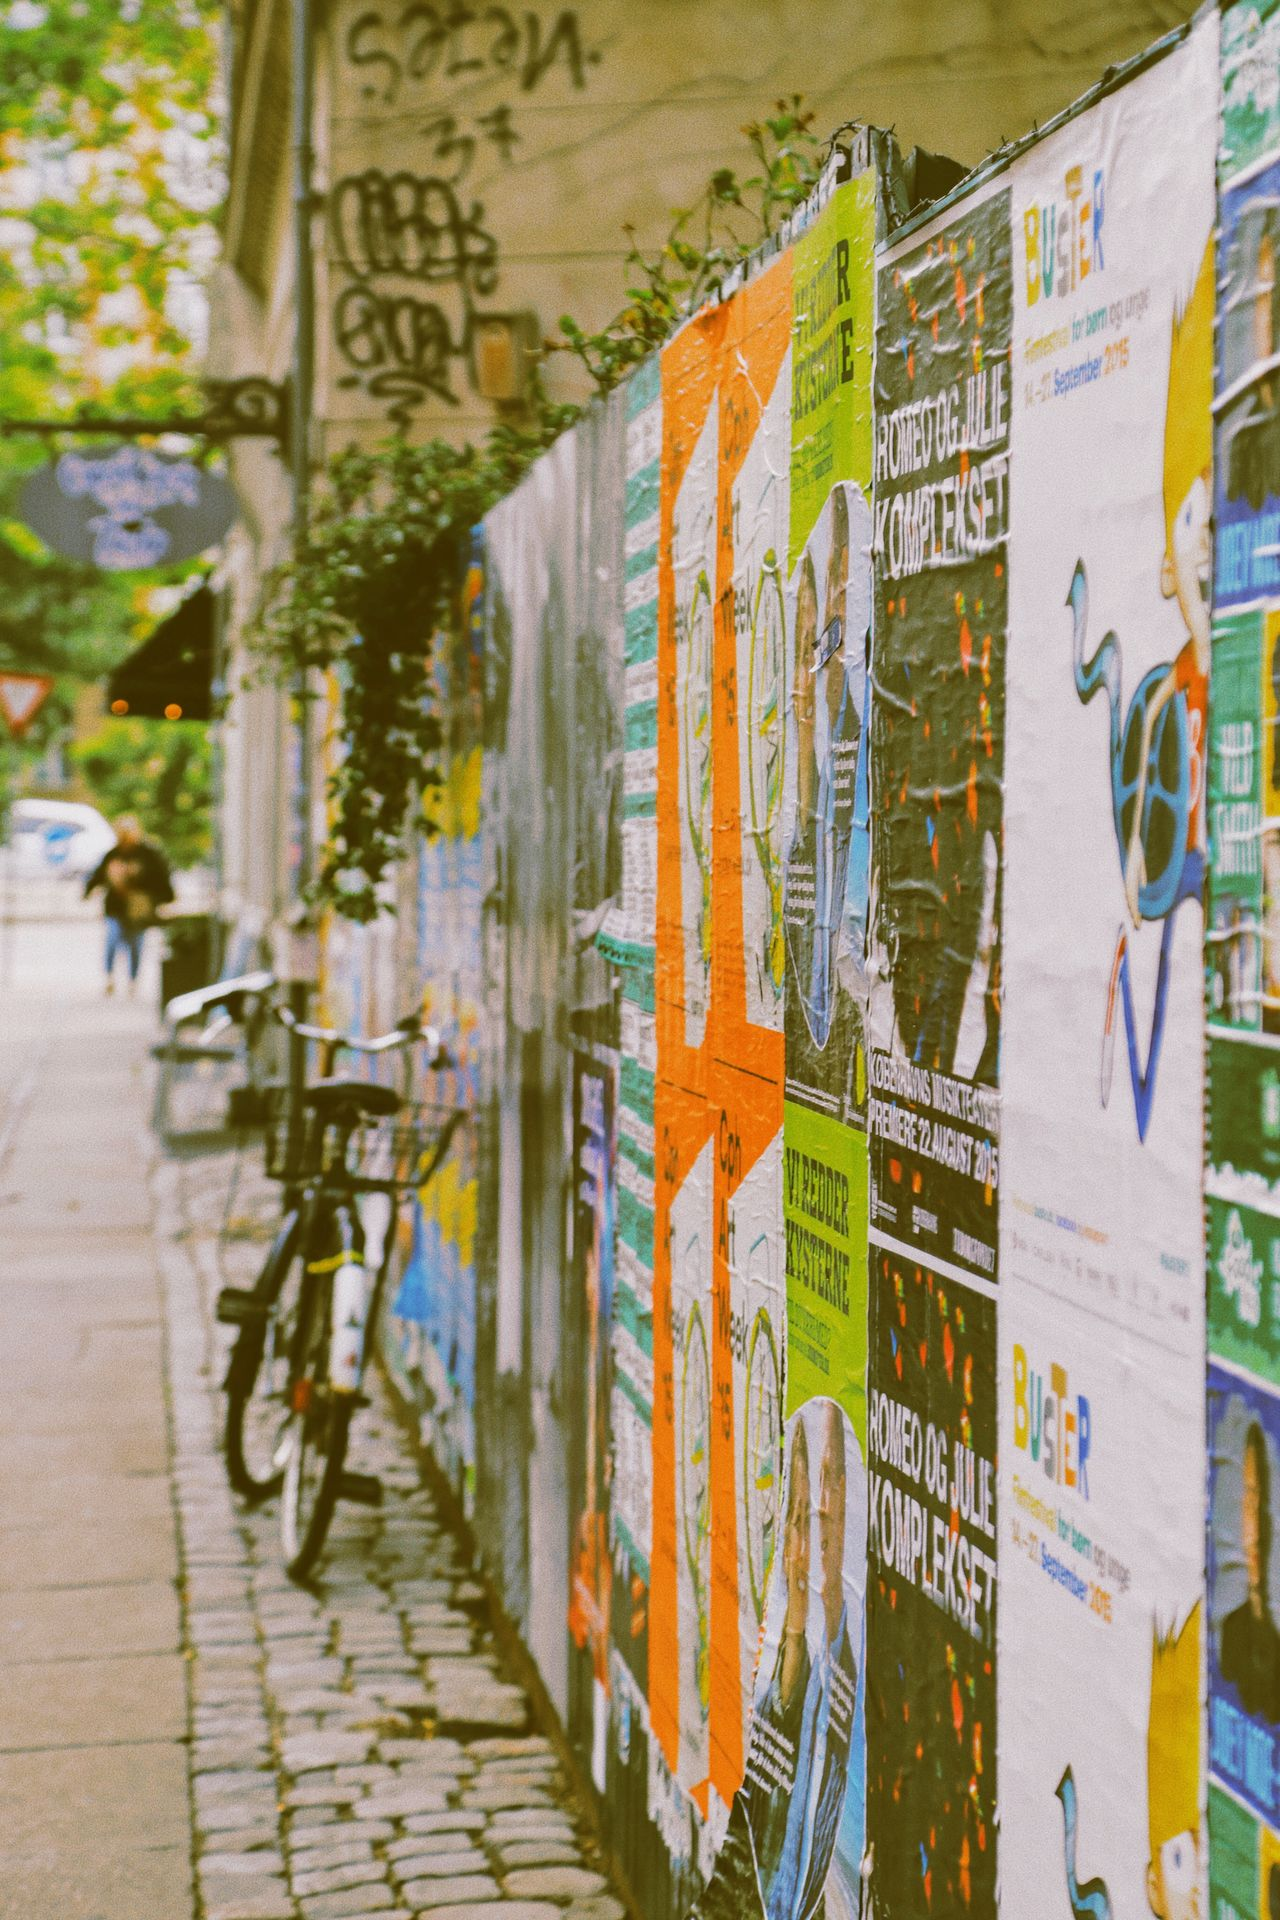 Multi Colored Business No People Outdoors Day Close-up City Street Rustic Beauty Rustic Charm Outdoor Photography Street Photography Fence Transportation Bicycle Parking City Life City View  Still Life Rustic Style Detail Wooden Post Wallpaper Wall Vintage Style Vintage Cityview